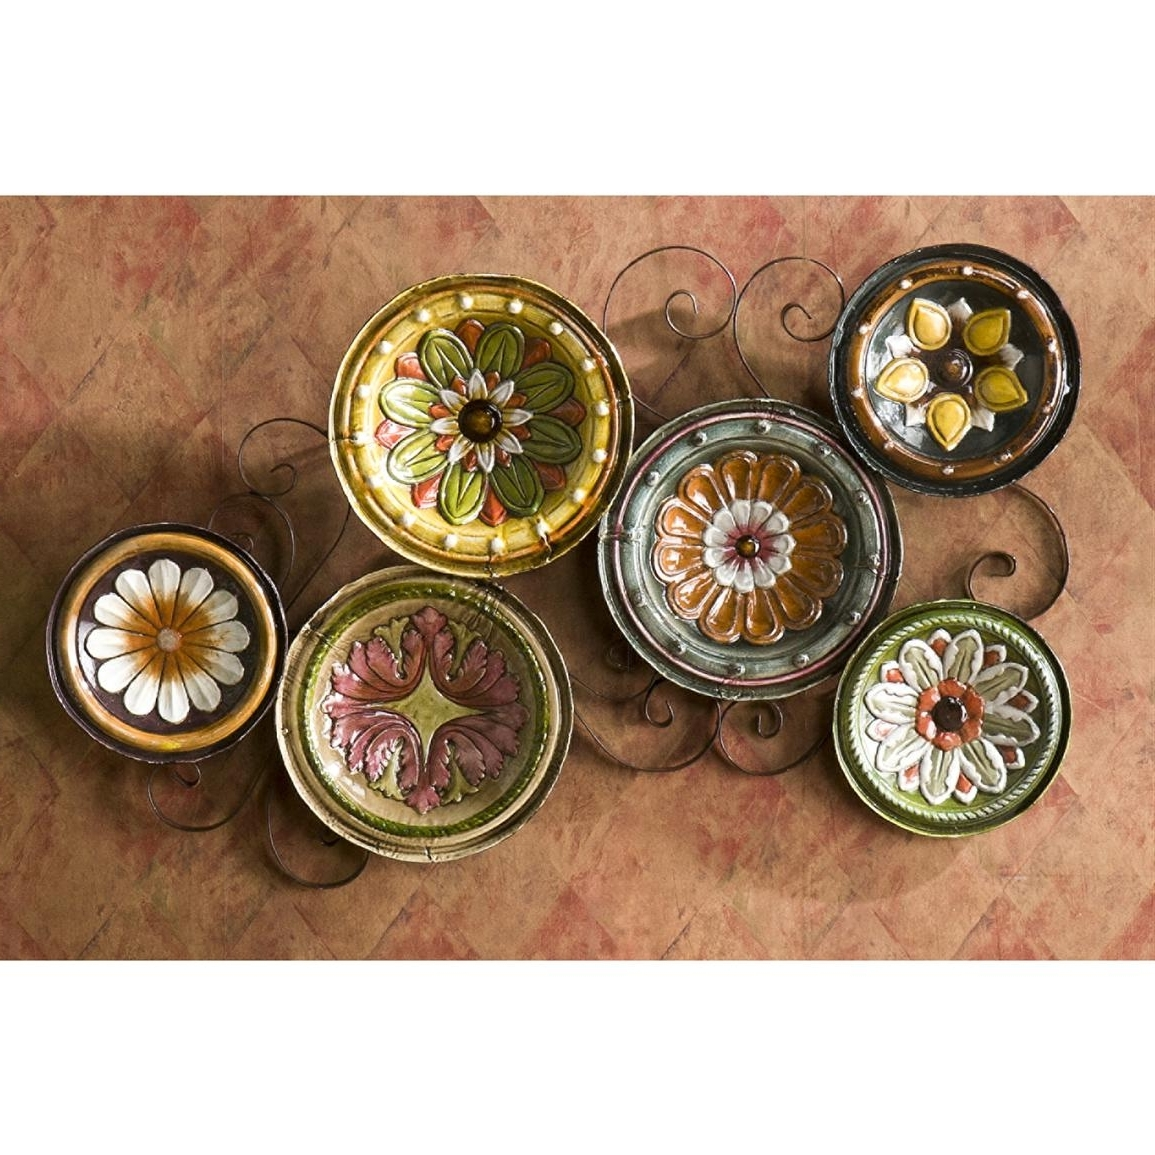 40 Lovely Ideas Decorative Wall Plates (View 2 of 15)